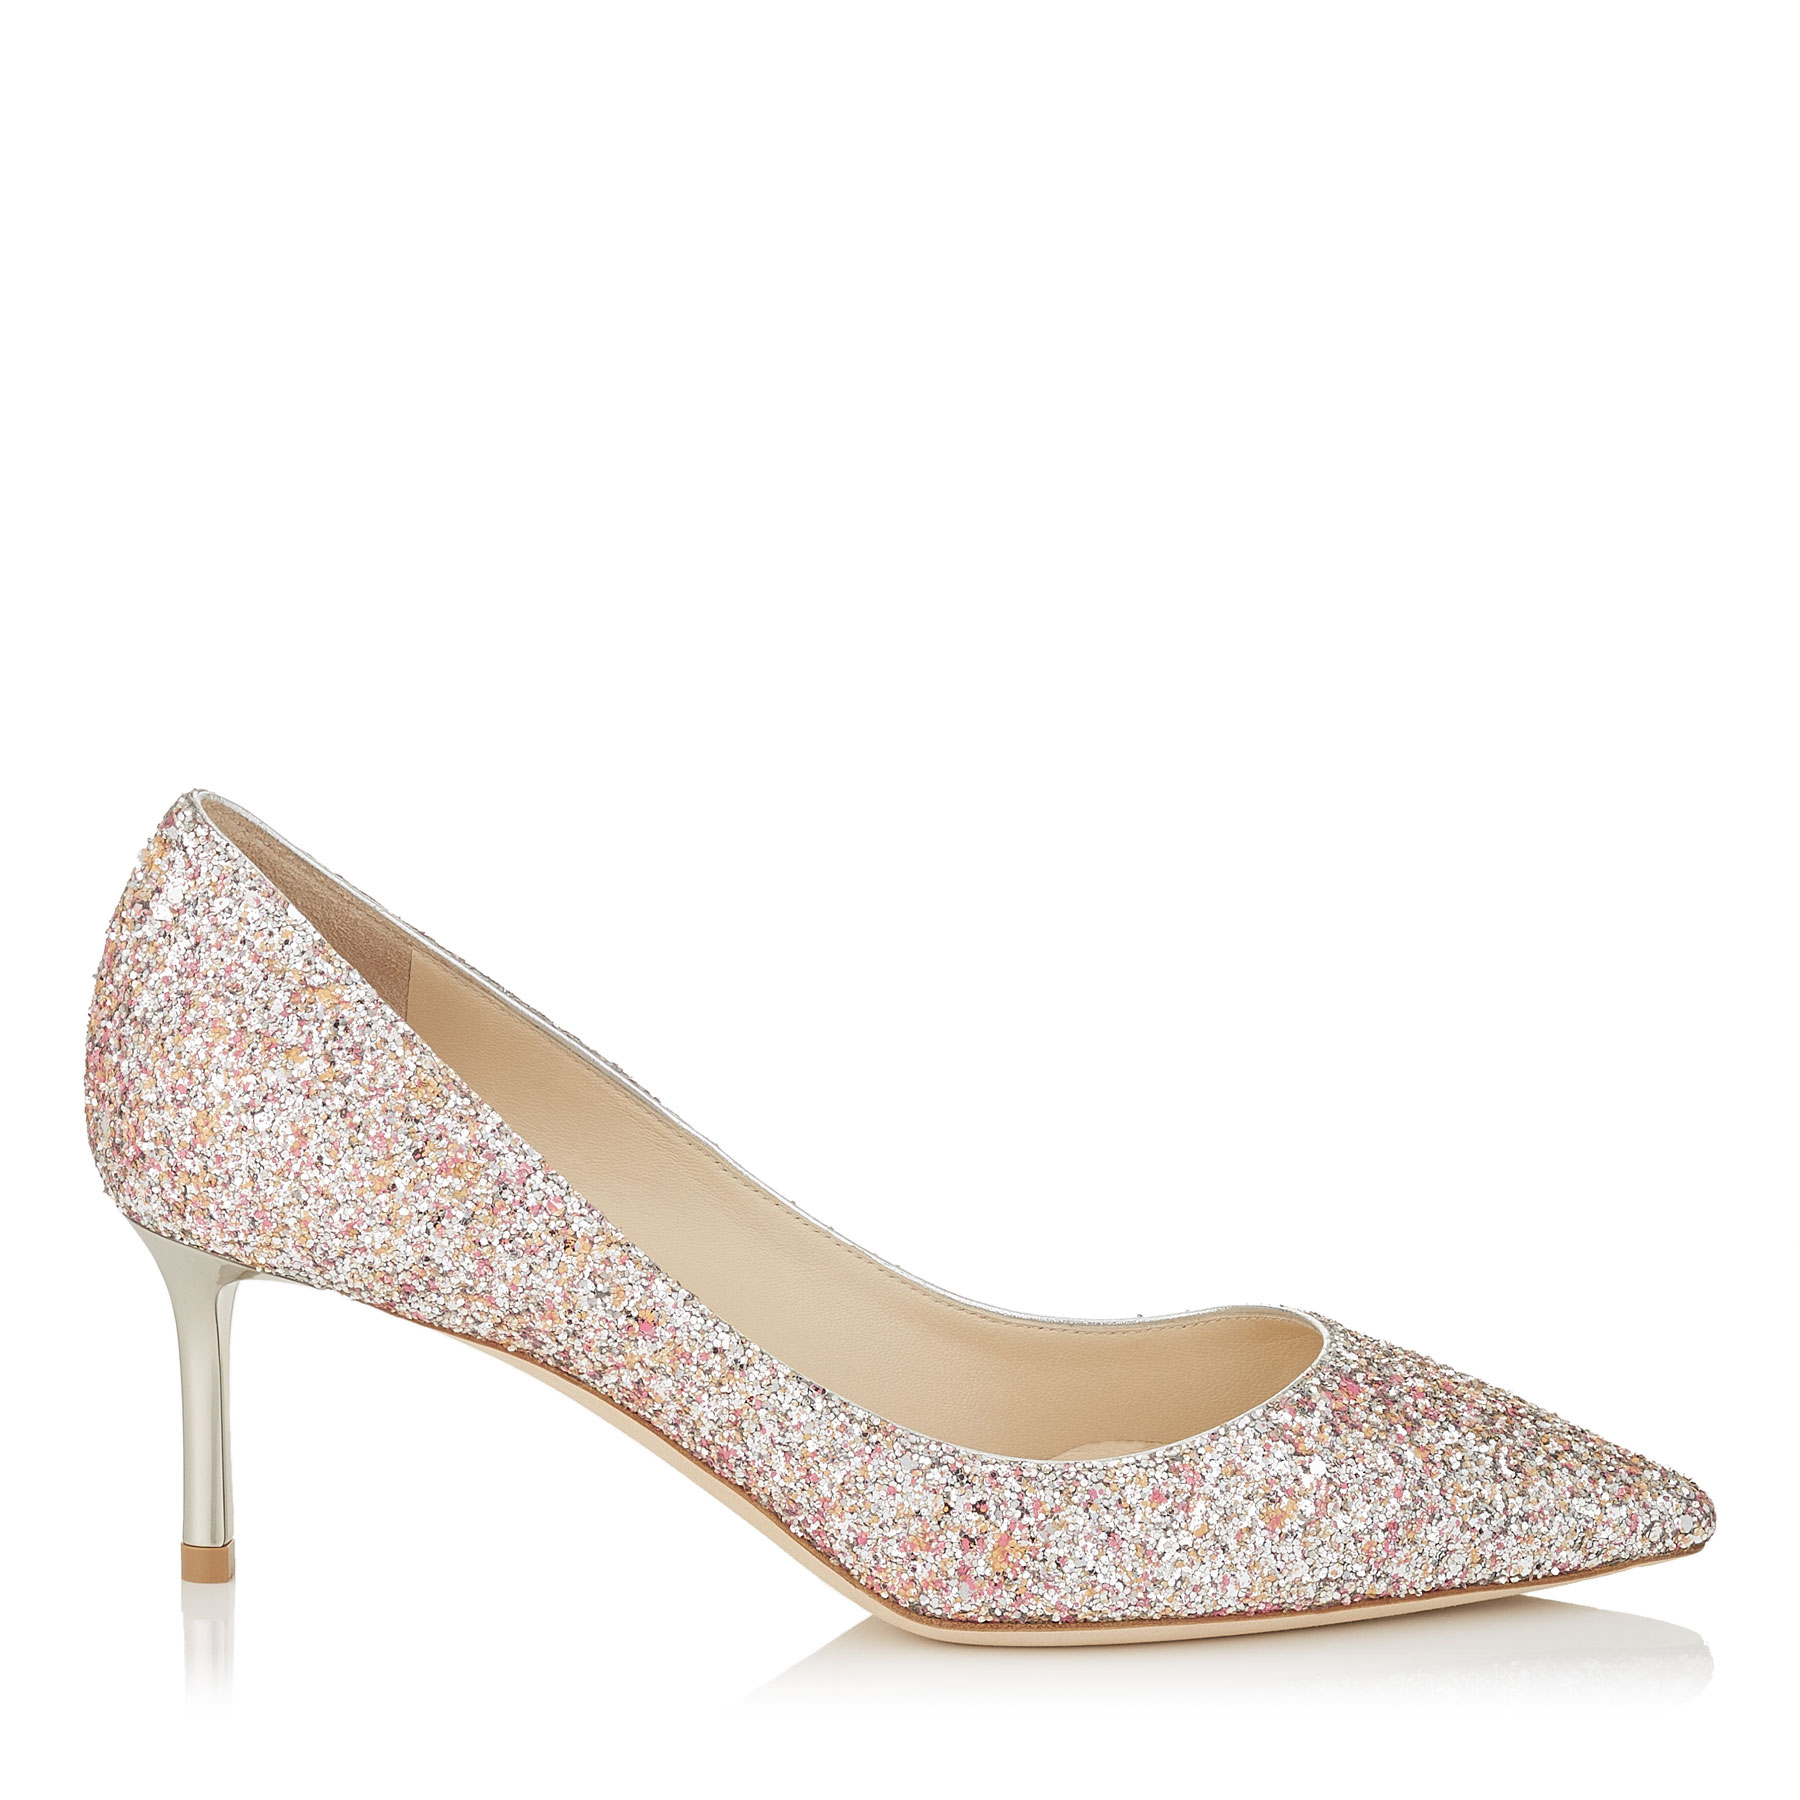 ROMY 60 Camellia Mix Speckled Glitter Pointy Toe Pumps